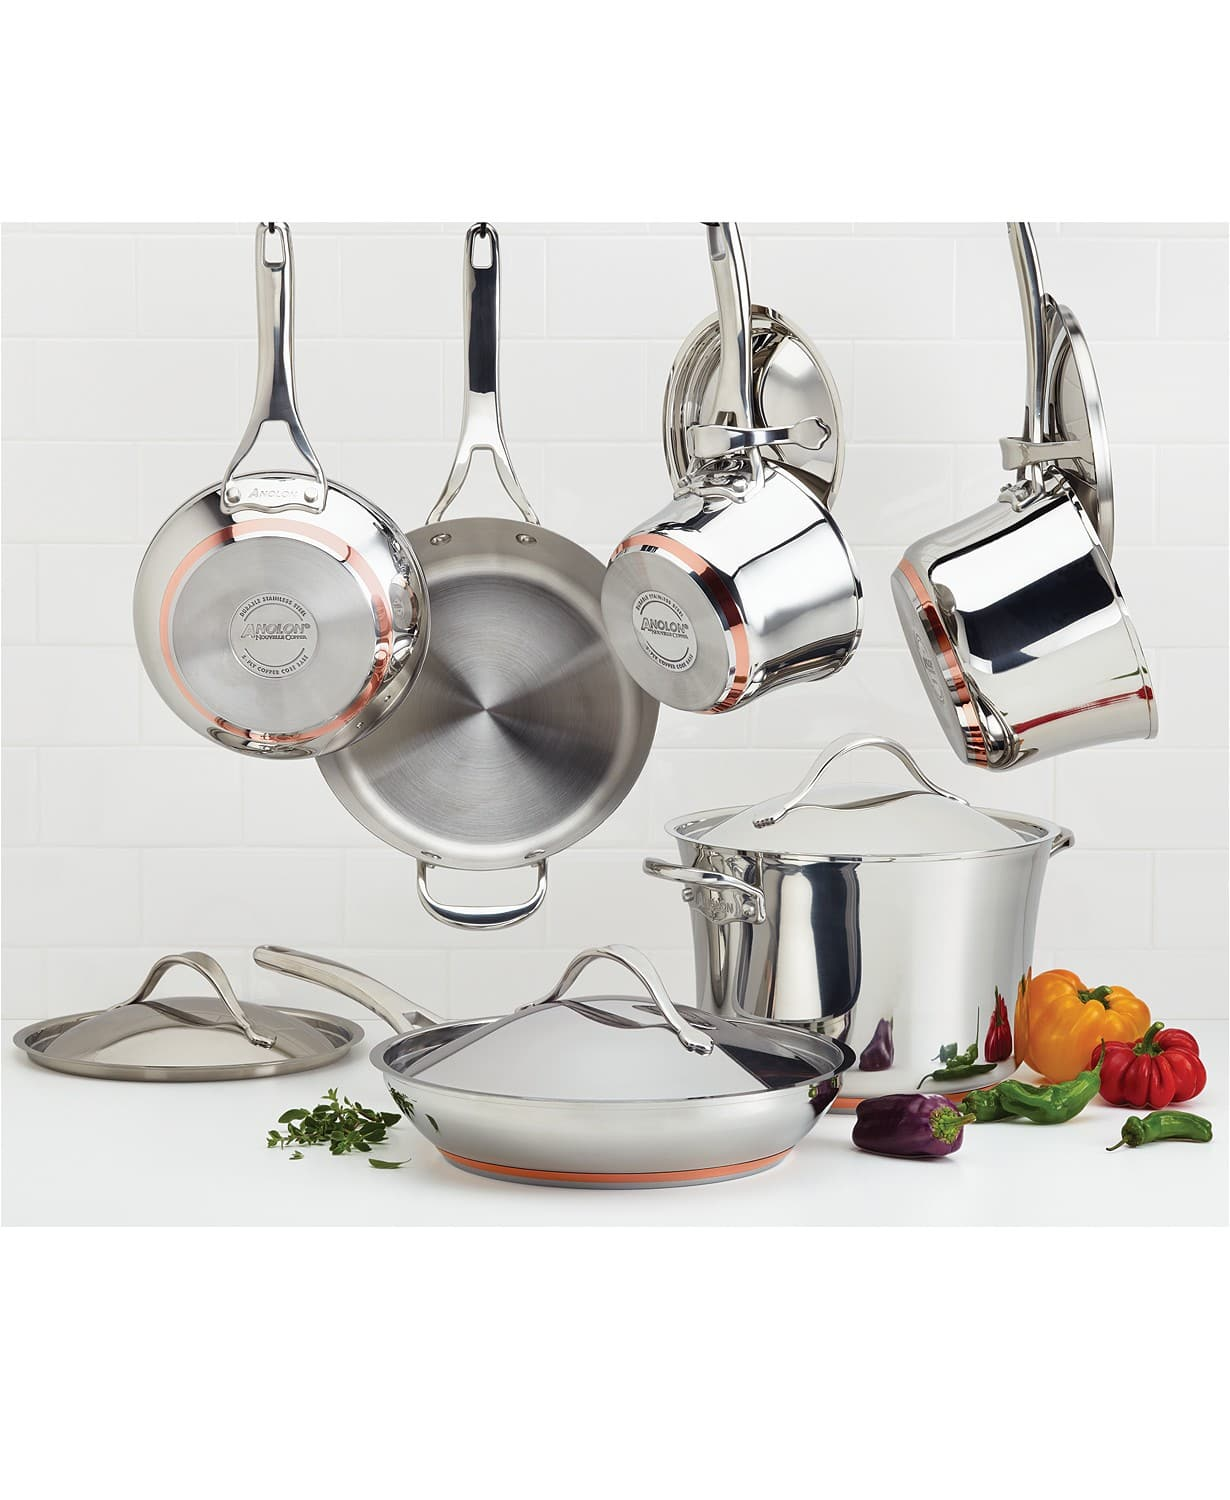 Anolon Nouvelle Copper Hard Anodized 11 Piece Cookware Set + Free 3 Piece Cookware Set - $279.99